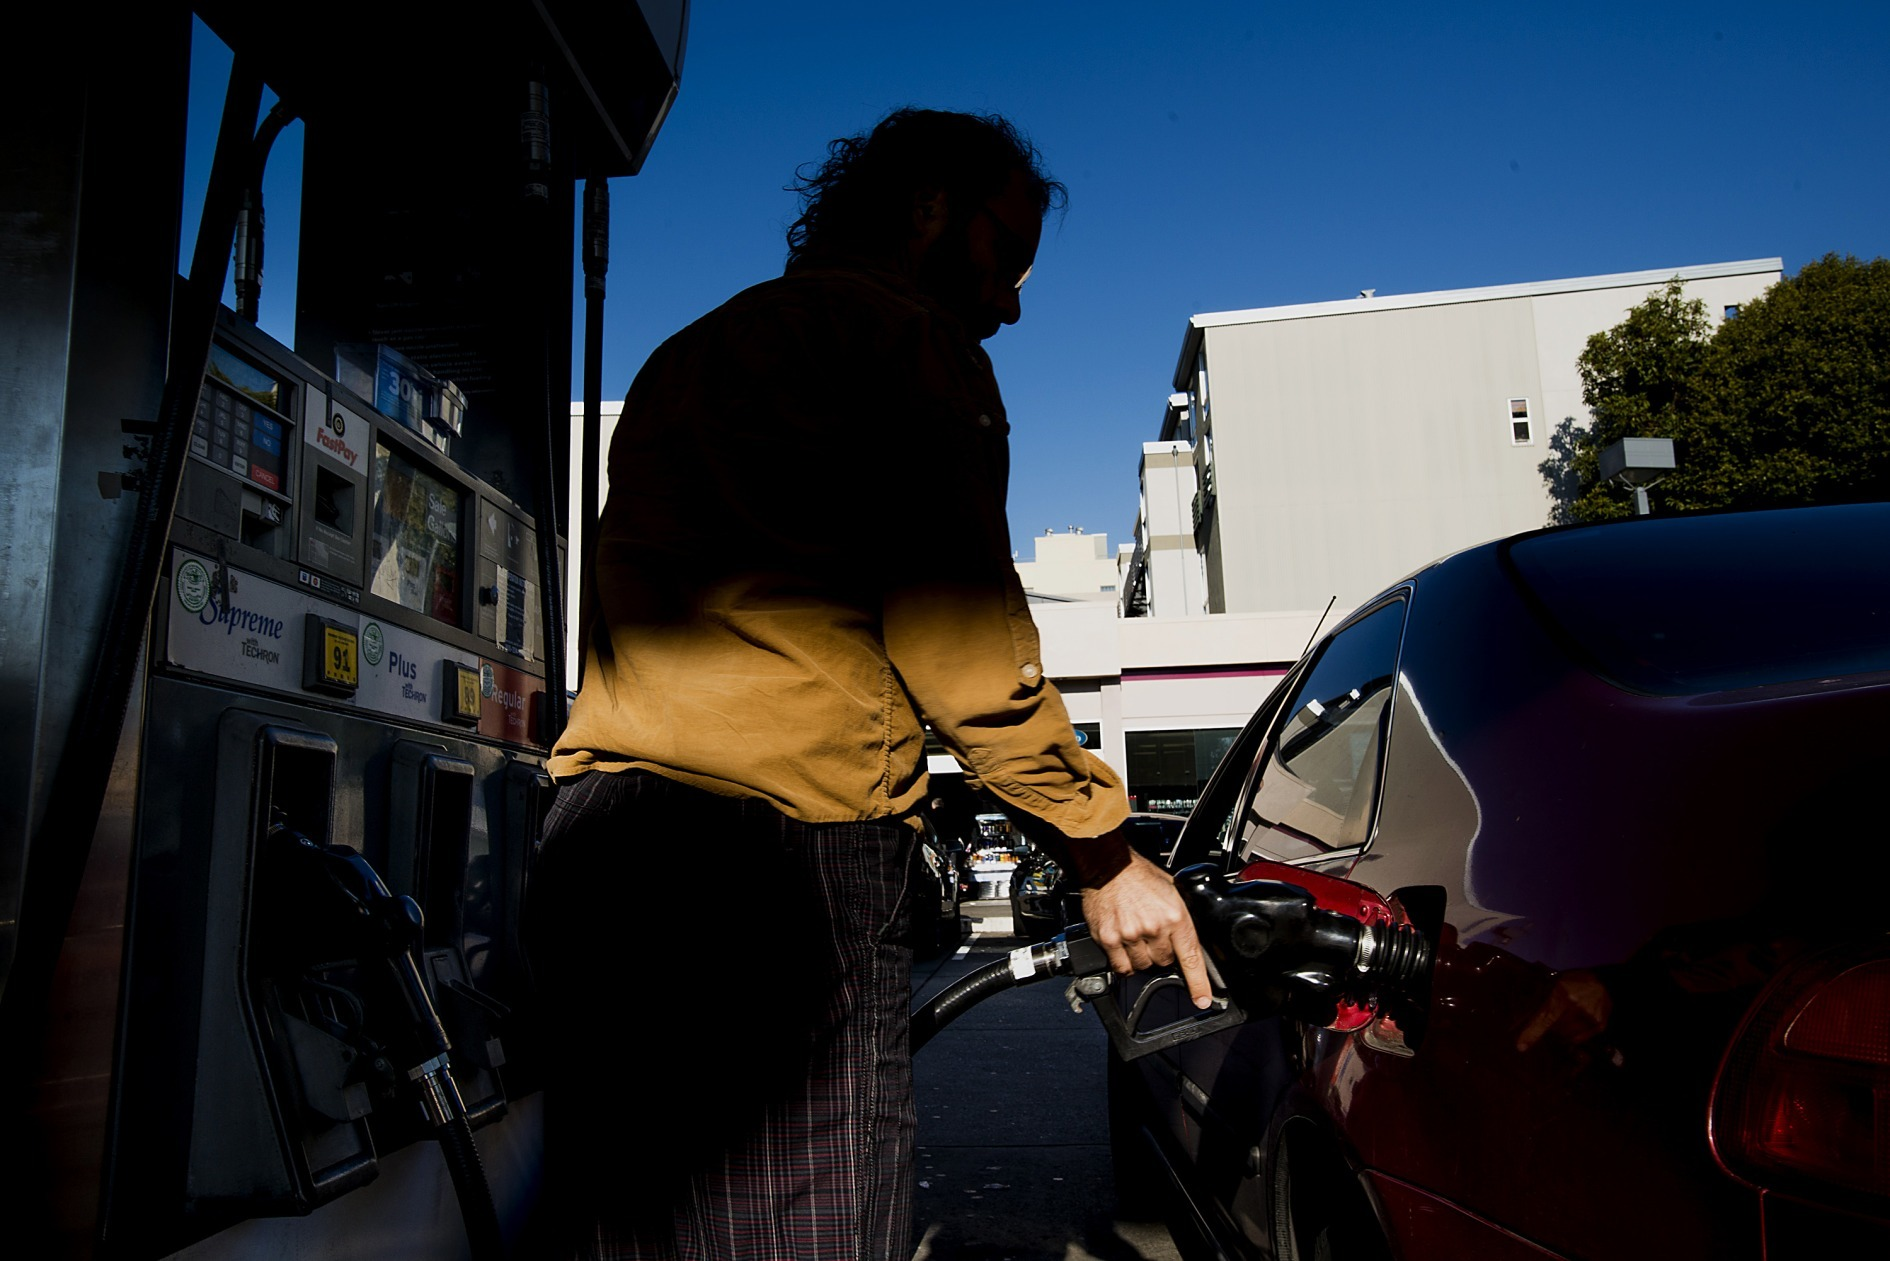 A customer fills a vehicle with gasoline at a Chevron Corp. station in San Francisco, California, U.S. Photographer: David Paul Morris/Bloomberg